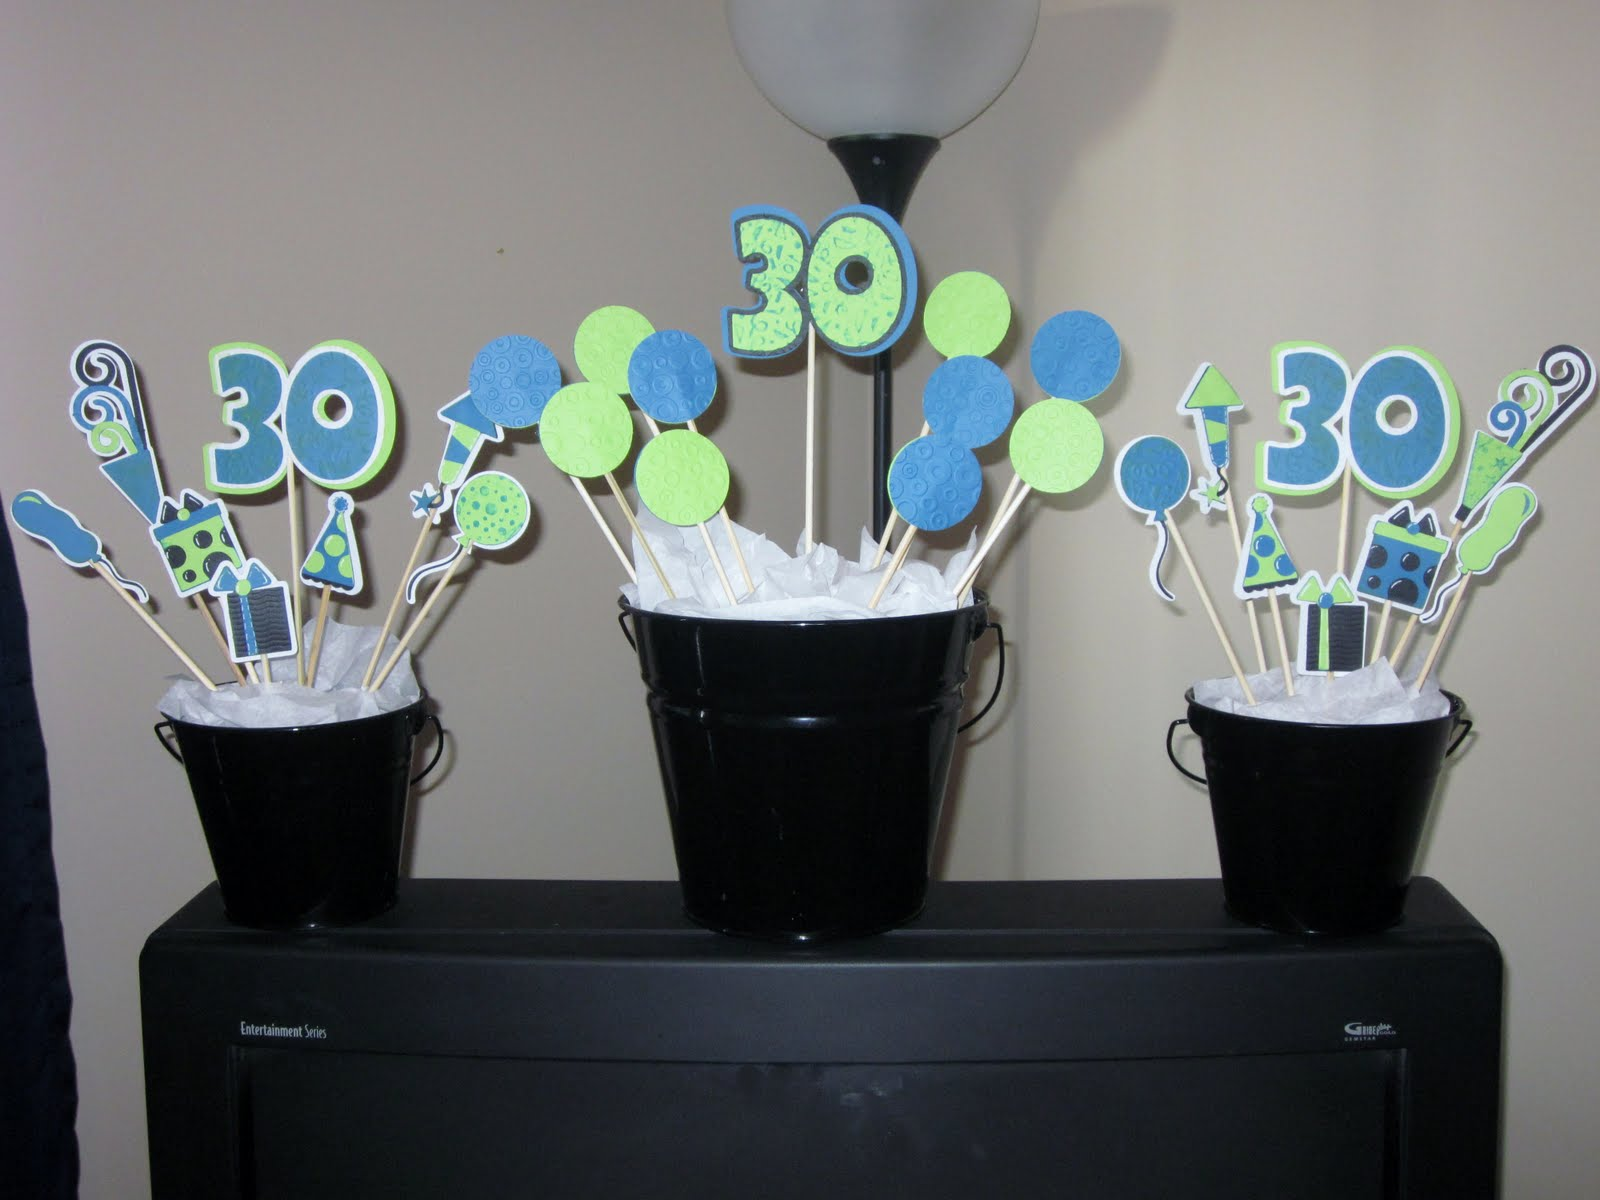 Jamiek711 designs 30th birthday decorations for 30th birthday decoration